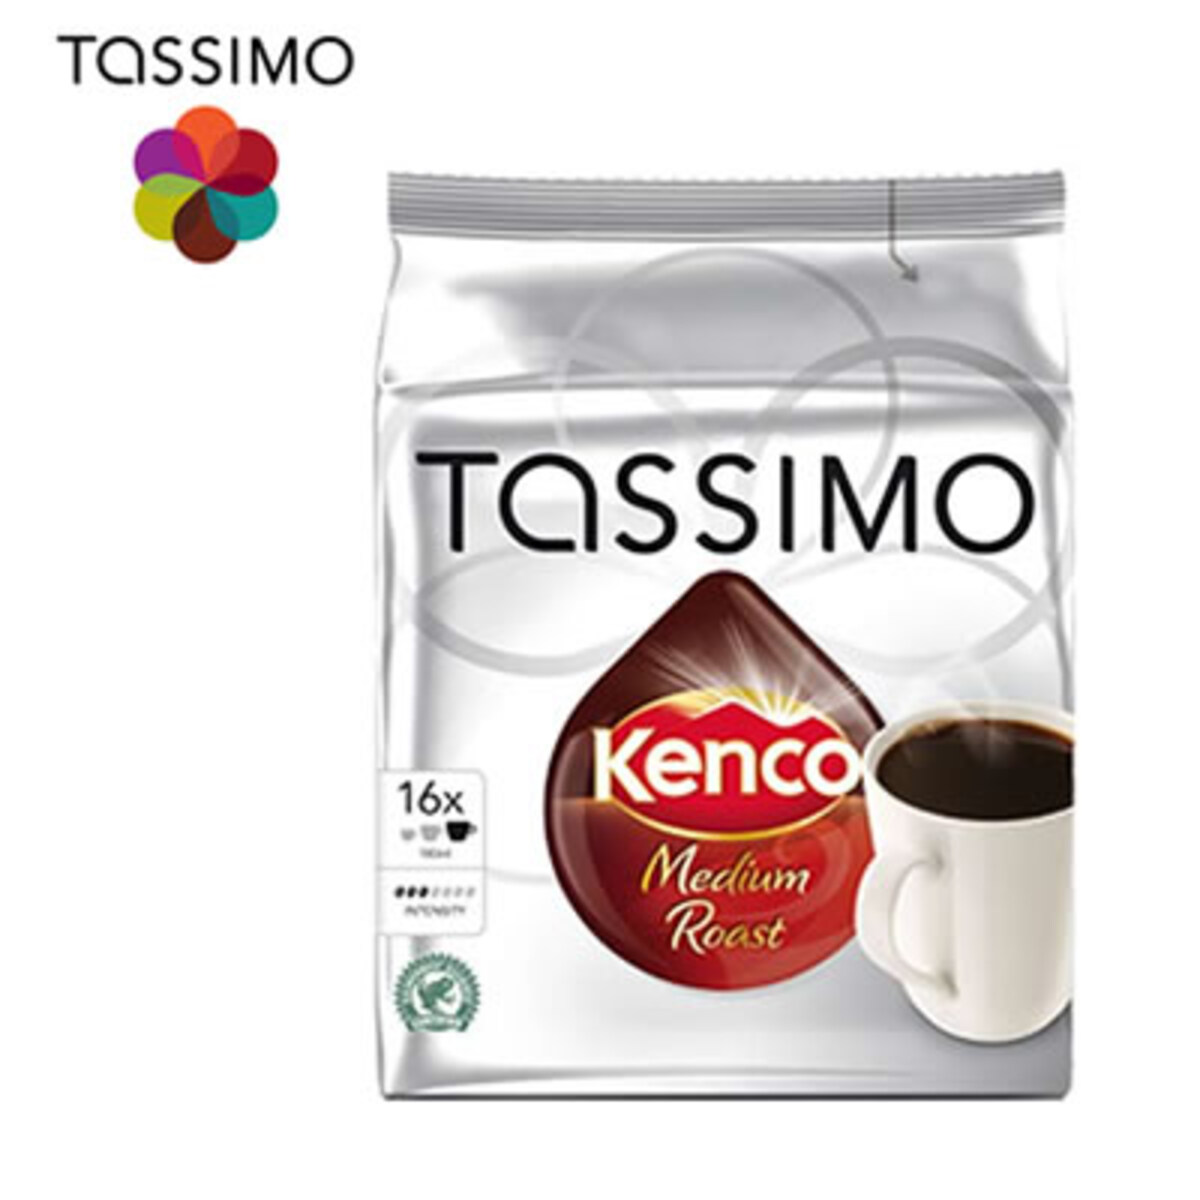 Tassimo Kenco Medium Roast